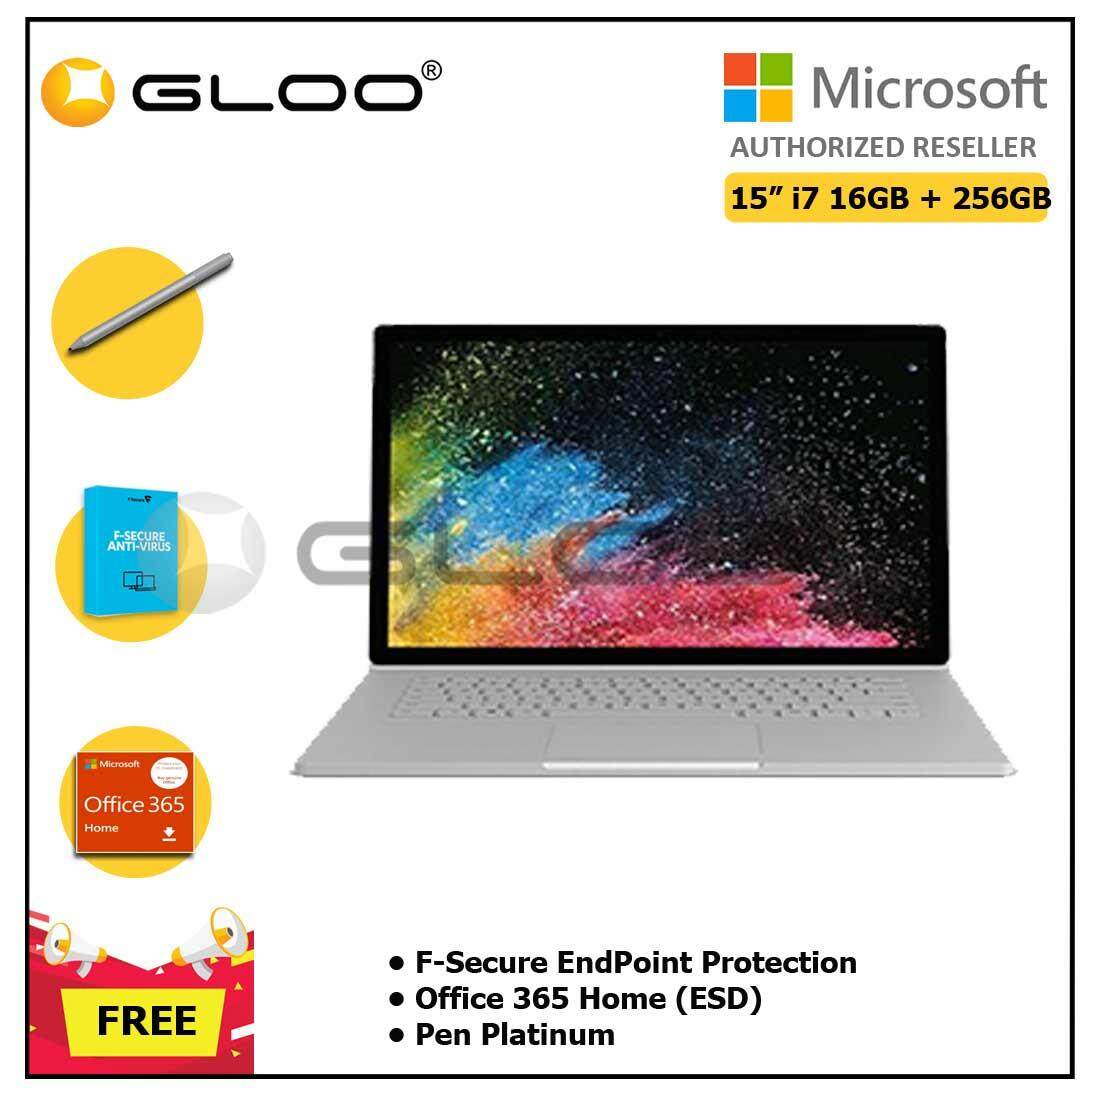 Microsoft Surface Book 2 15 i7/16GB 256GB + F-Secure EndPoint Protection + Office 365 Home ESD + Pen Platinum Malaysia